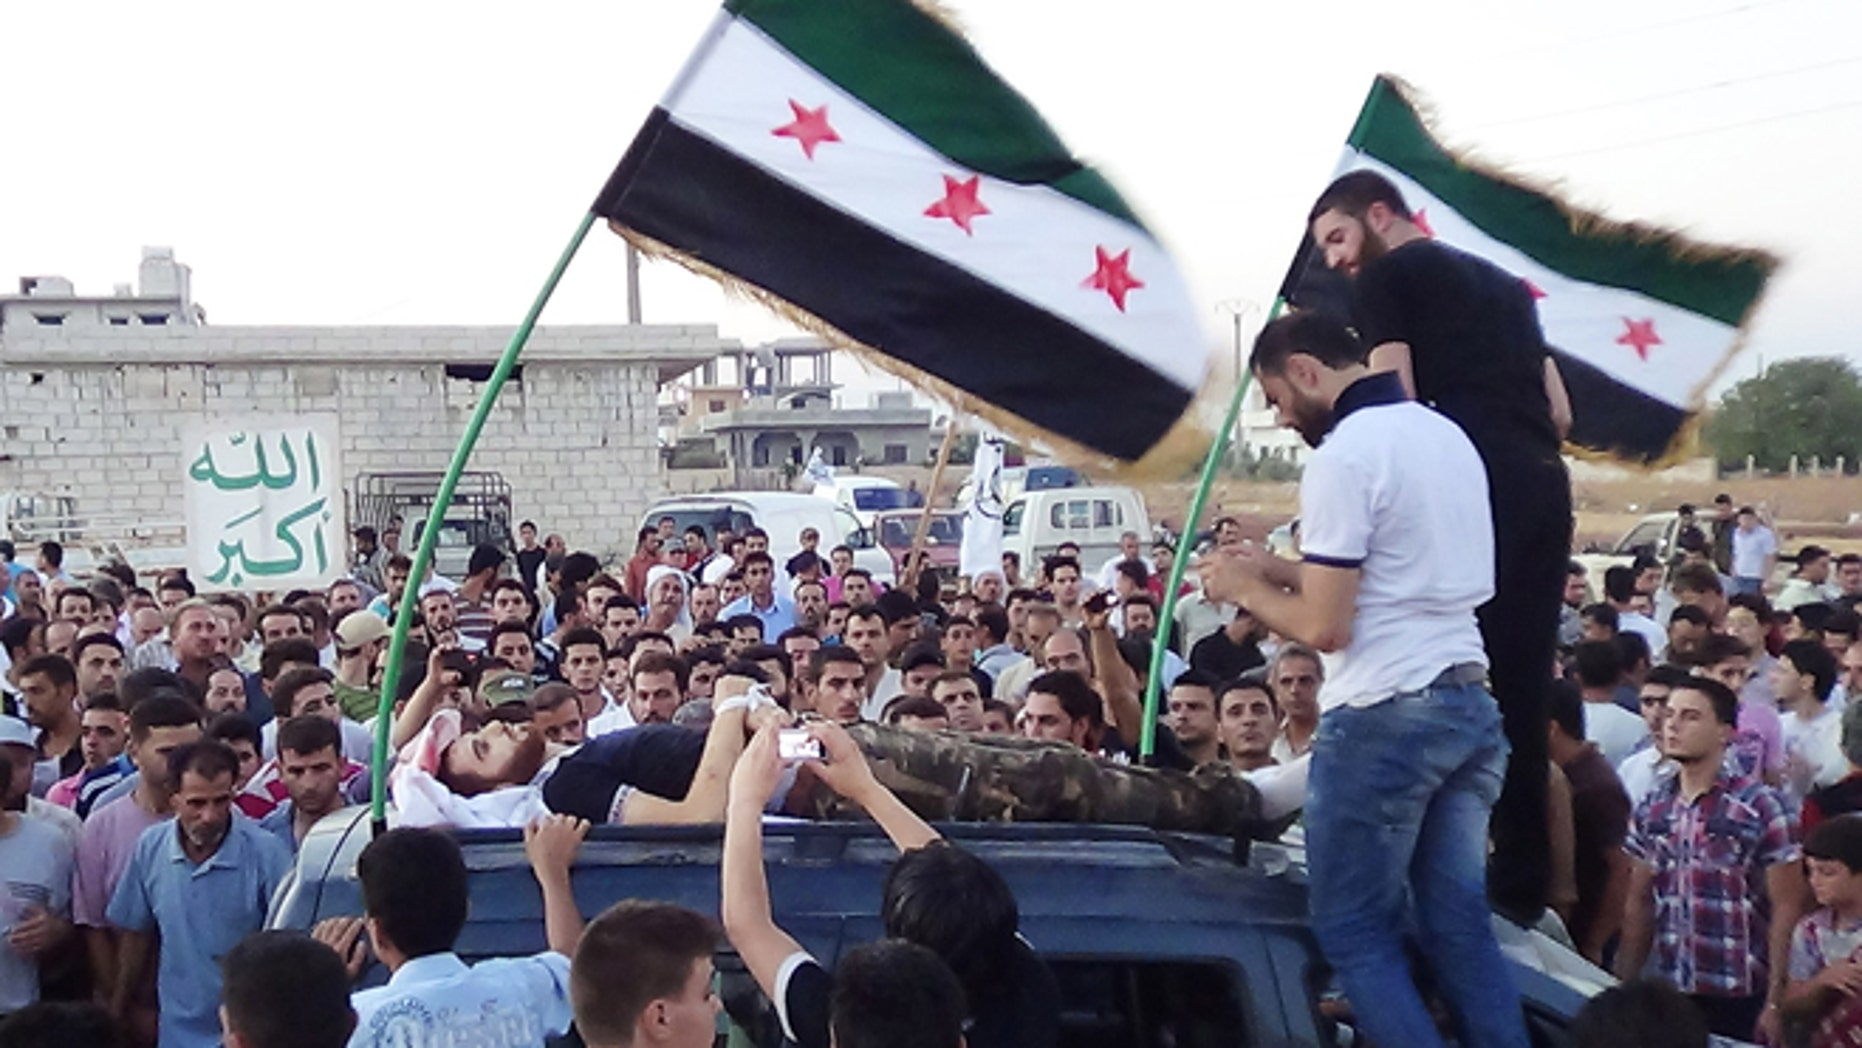 """In this citizen journalism image provided by Shaam News Network SNN, taken on Tuesday, Aug. 7, 2012, Syrians attend the funeral procession of a man killed in Idlib province, Syria. Arabic, left, reads, """"God is great."""""""